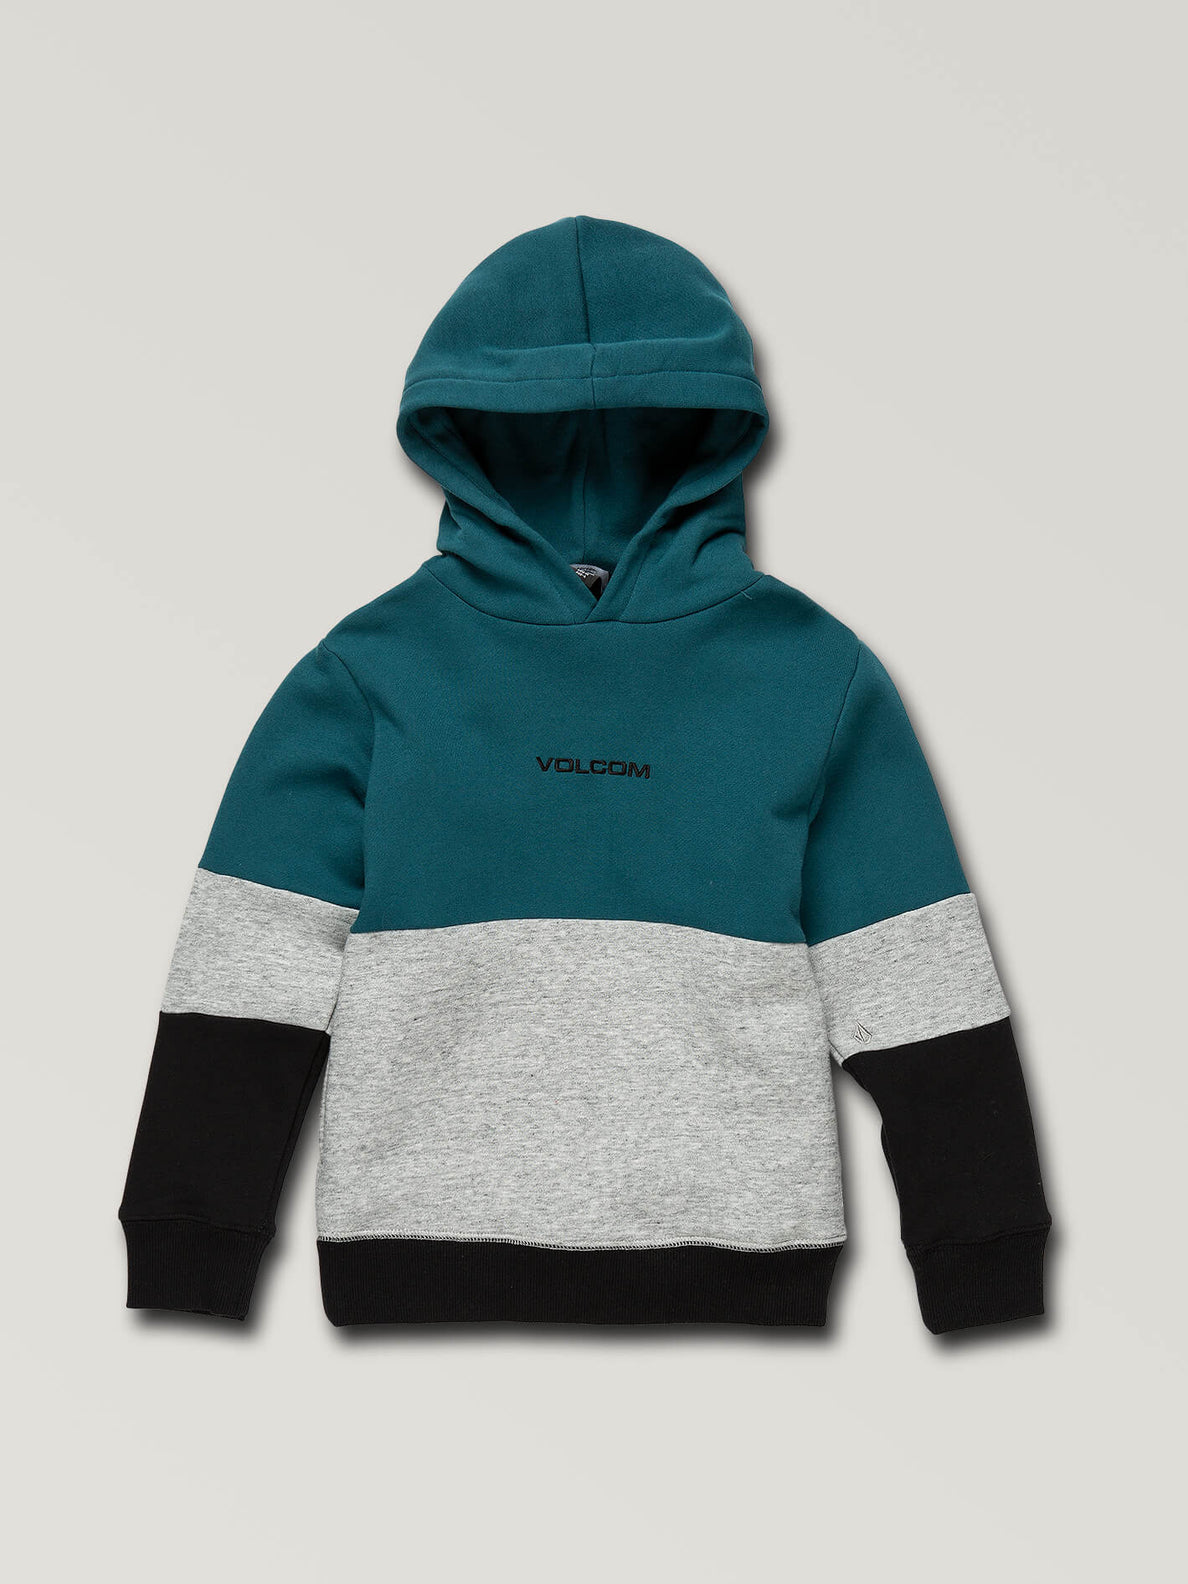 Little Boys Single Stone Division Pullover Hoodie In Teal, Front View